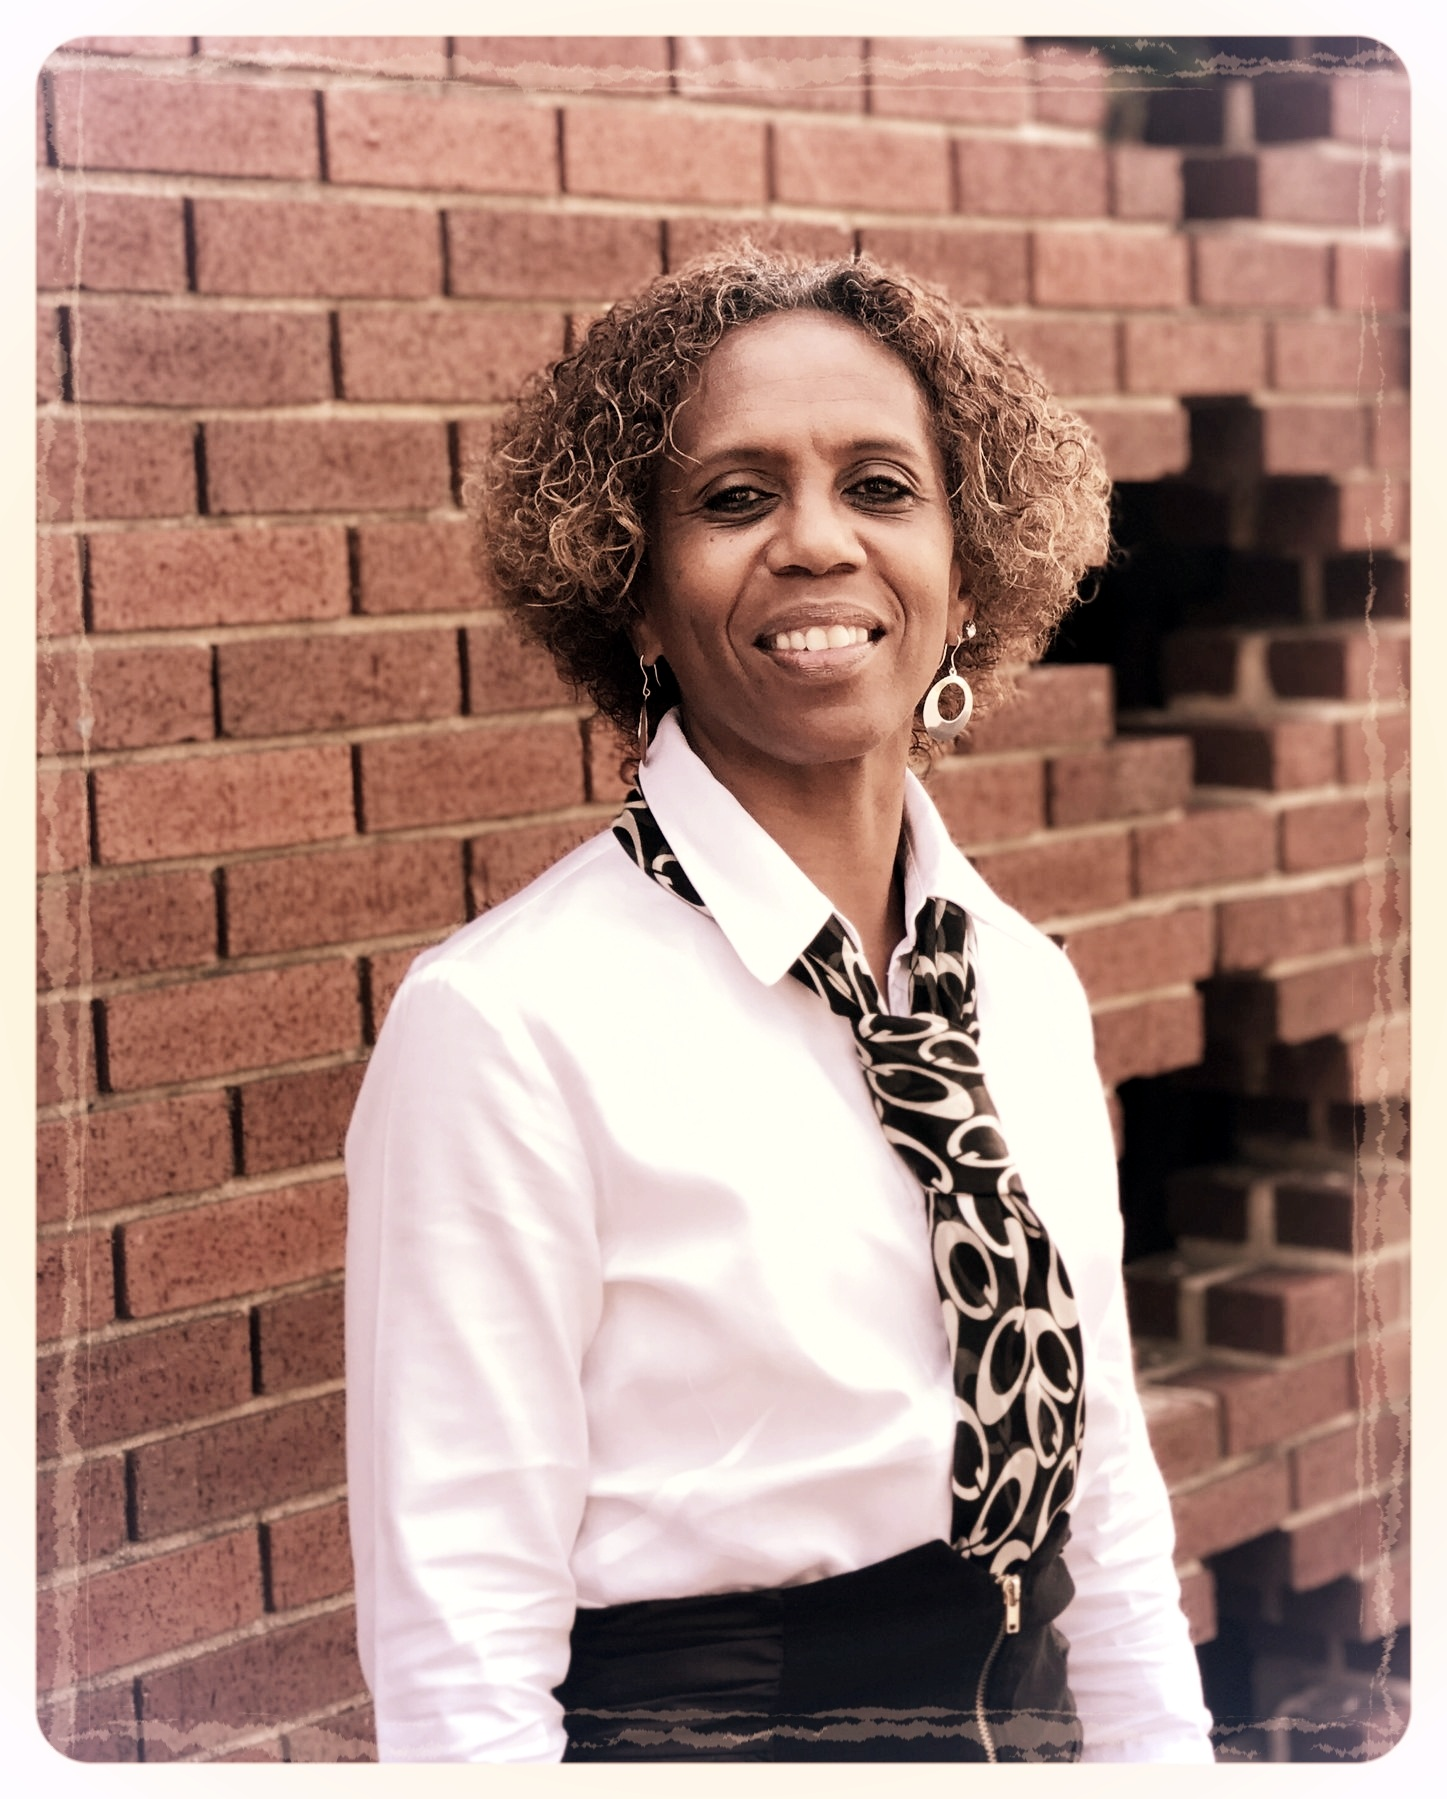 Sandra King  |  Administrative Assistant